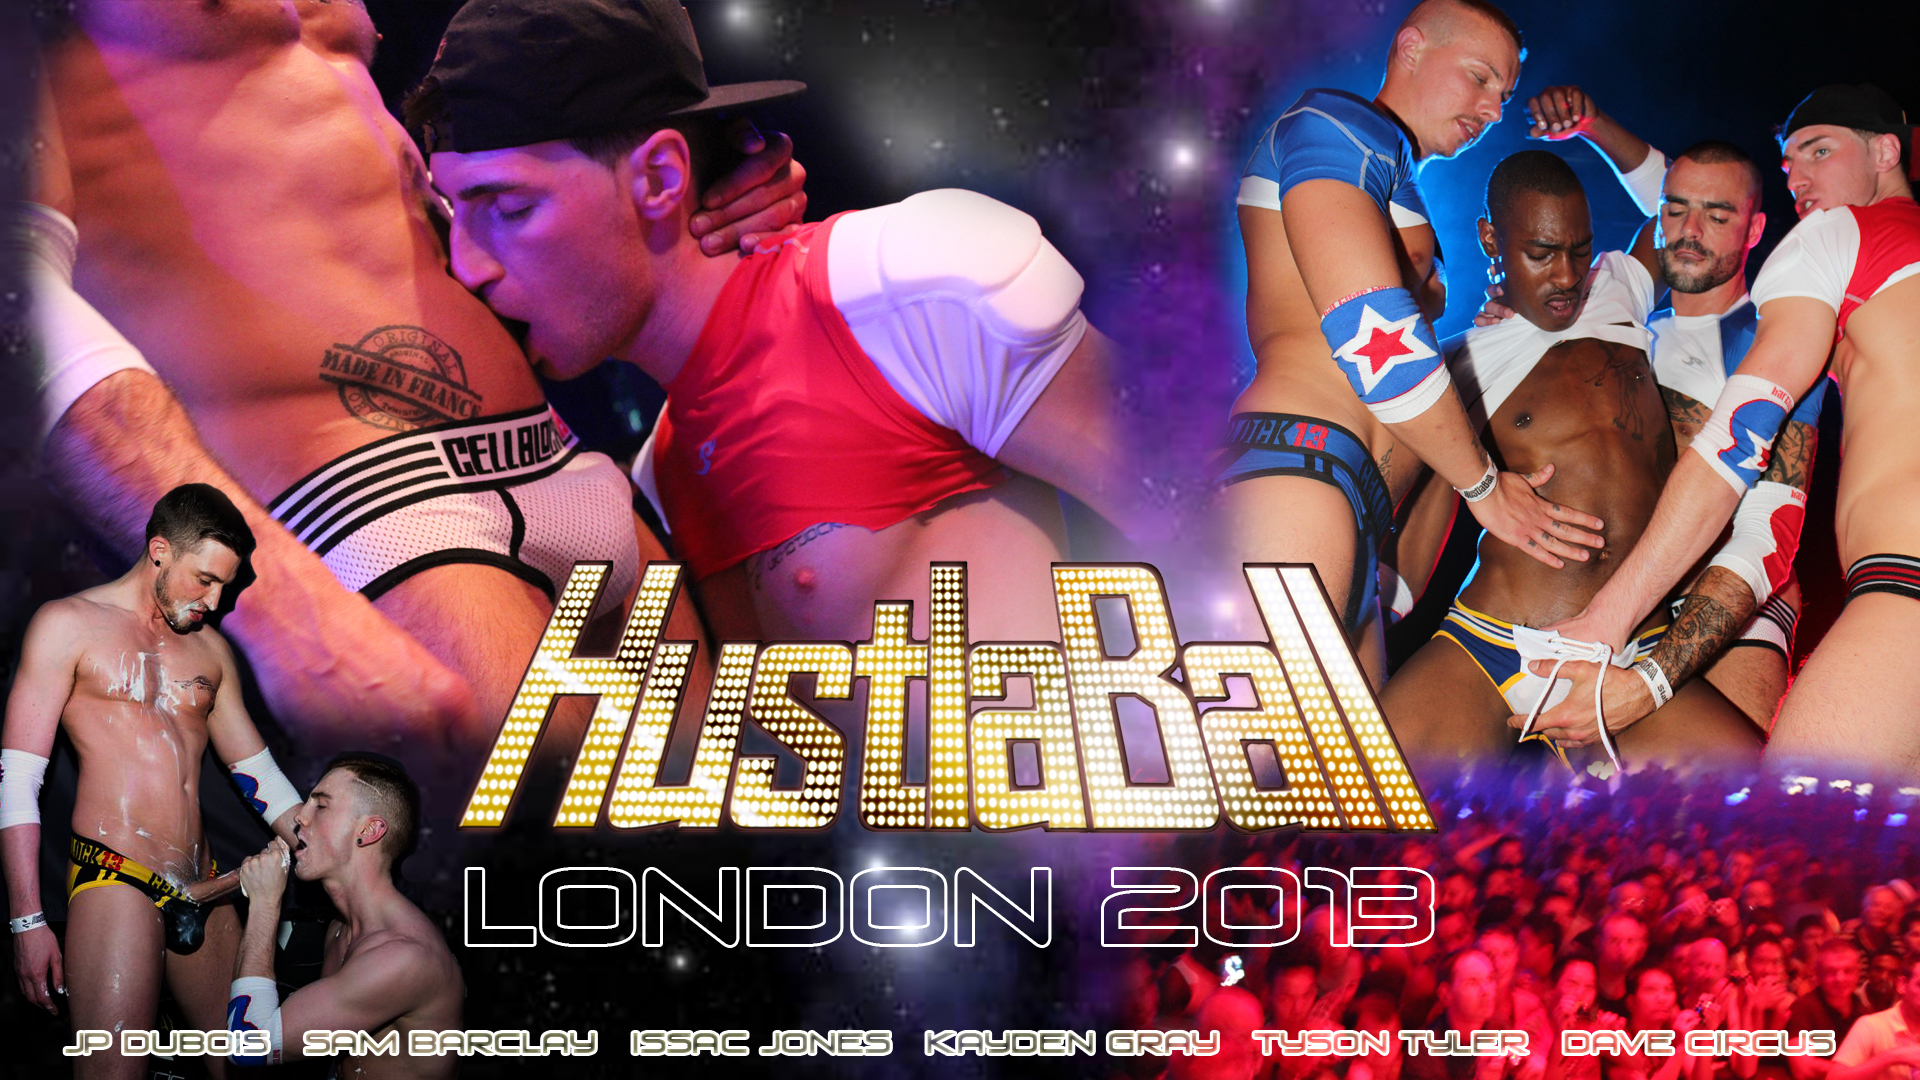 Bonus Content | HustlaBall The Movie